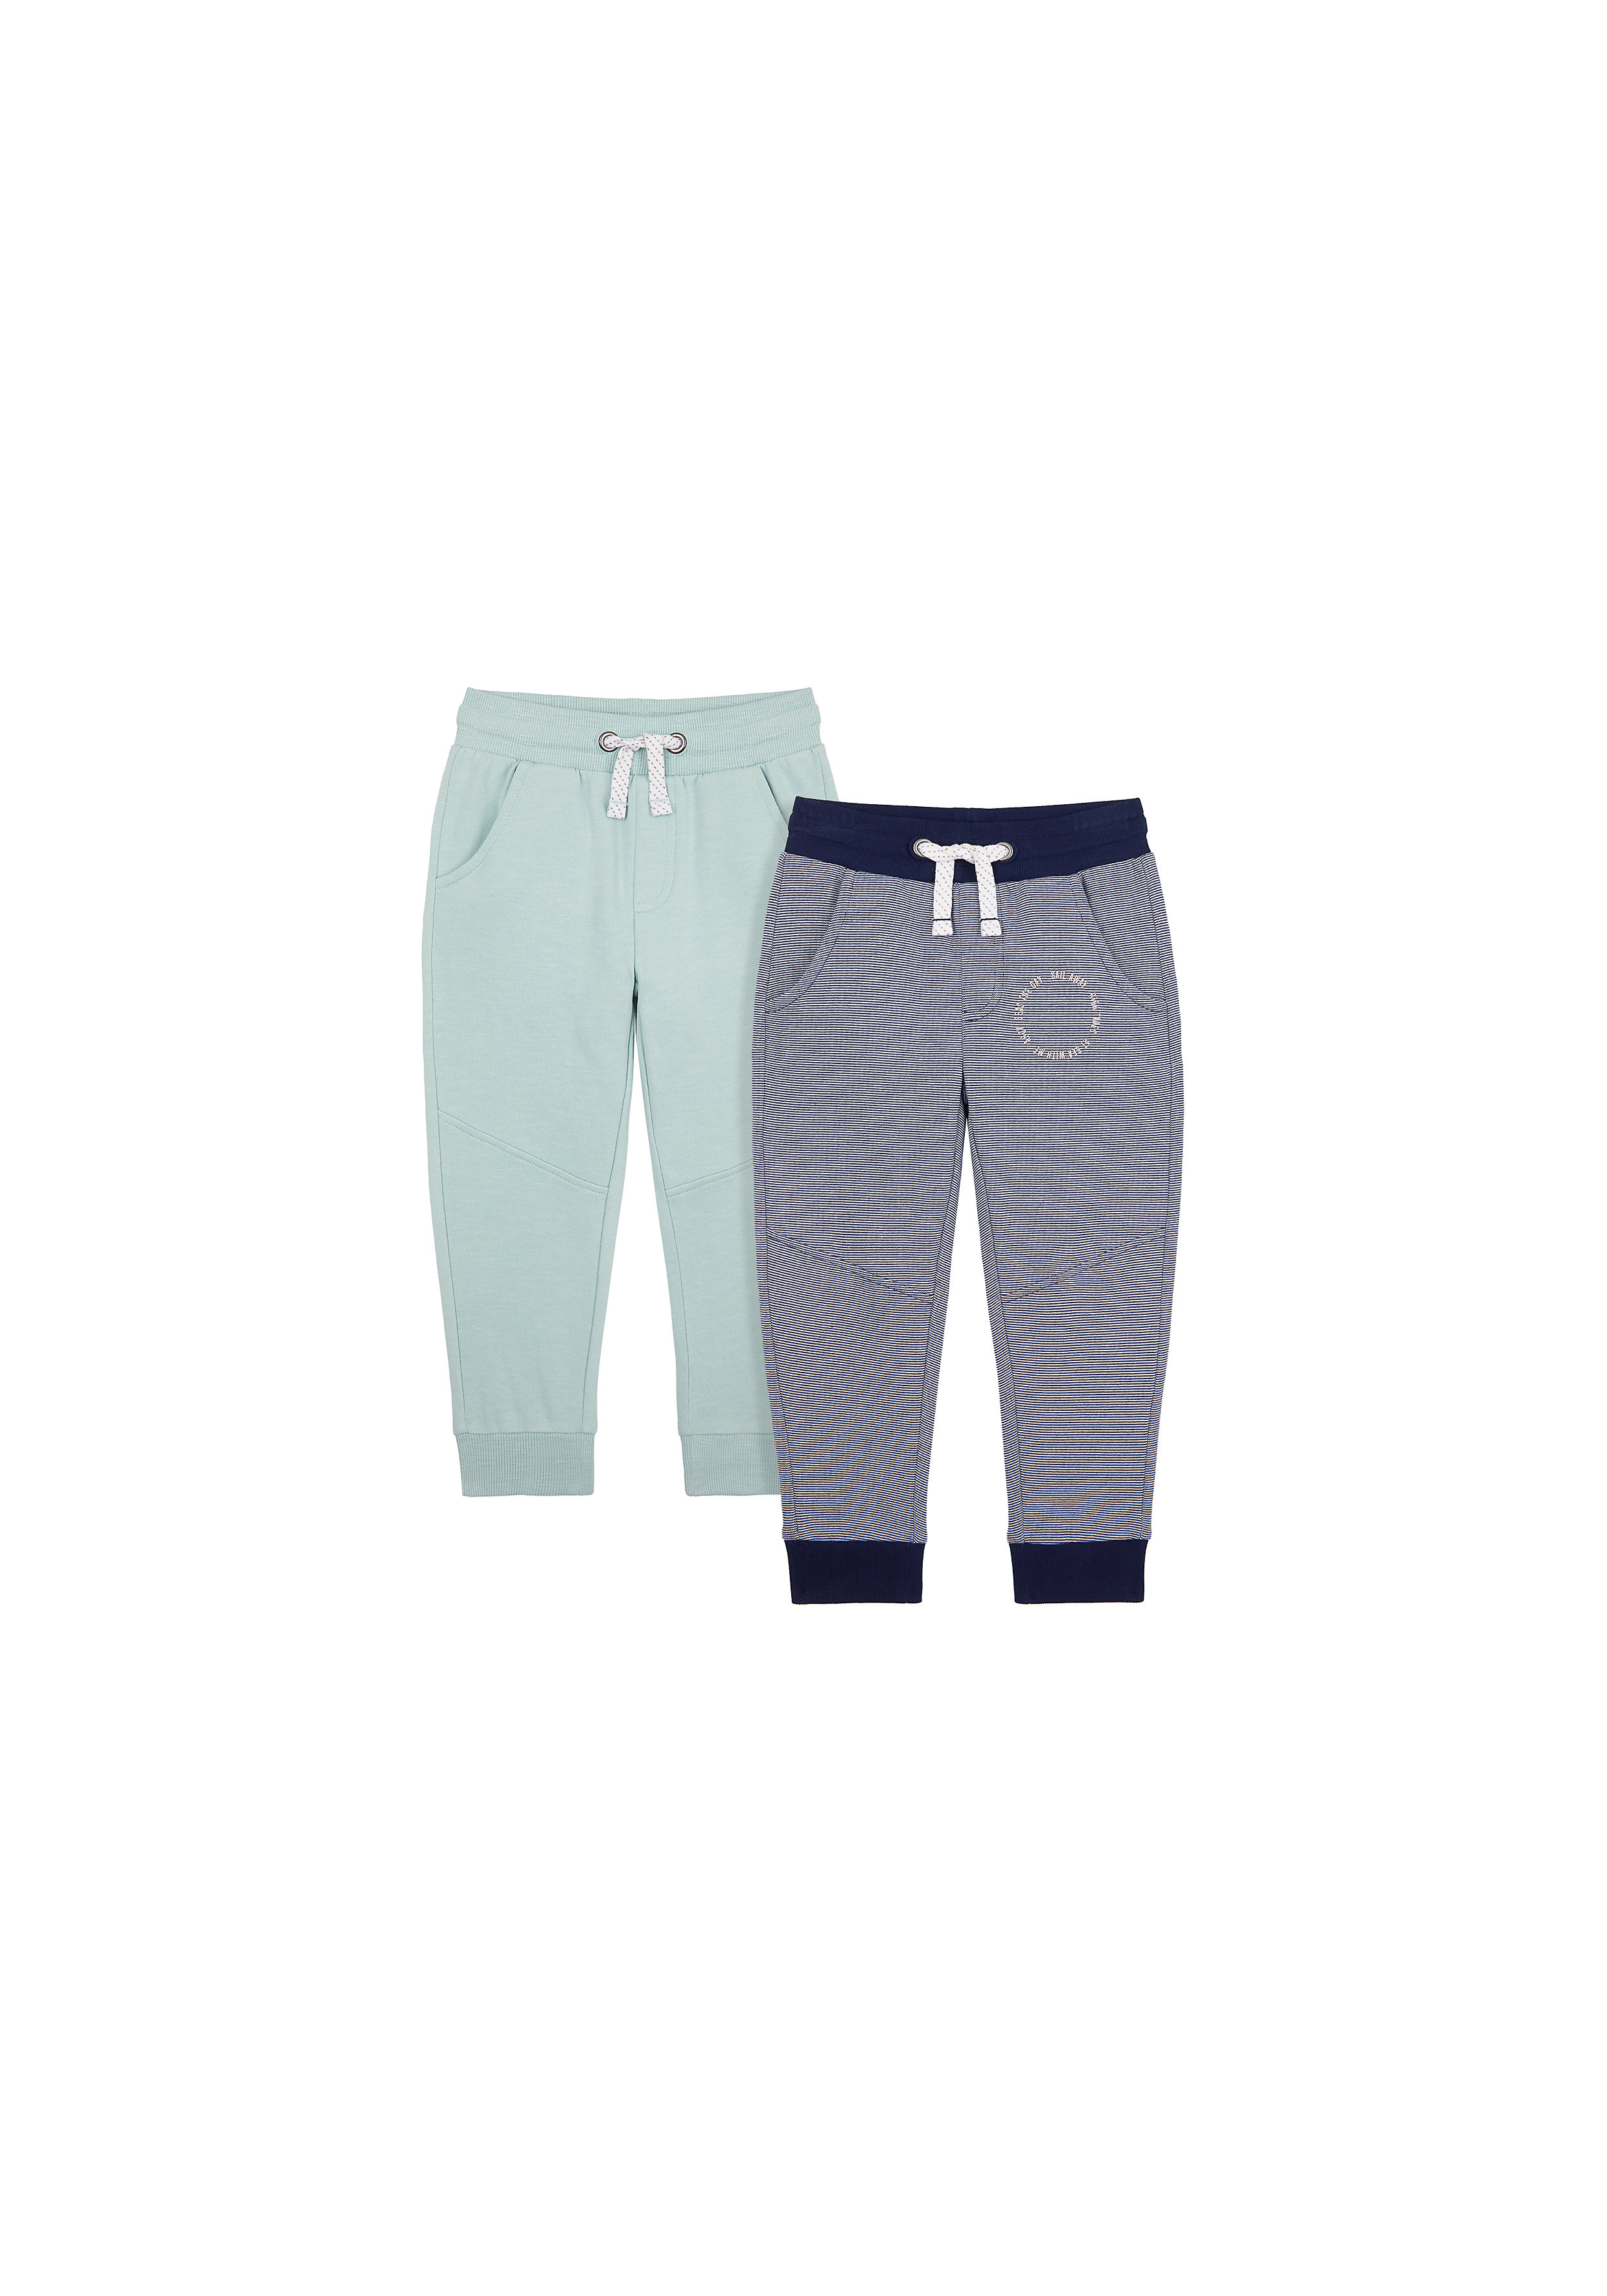 Mothercare | Boys Joggers Panel Detail - Pack Of 2 - Blue Navy